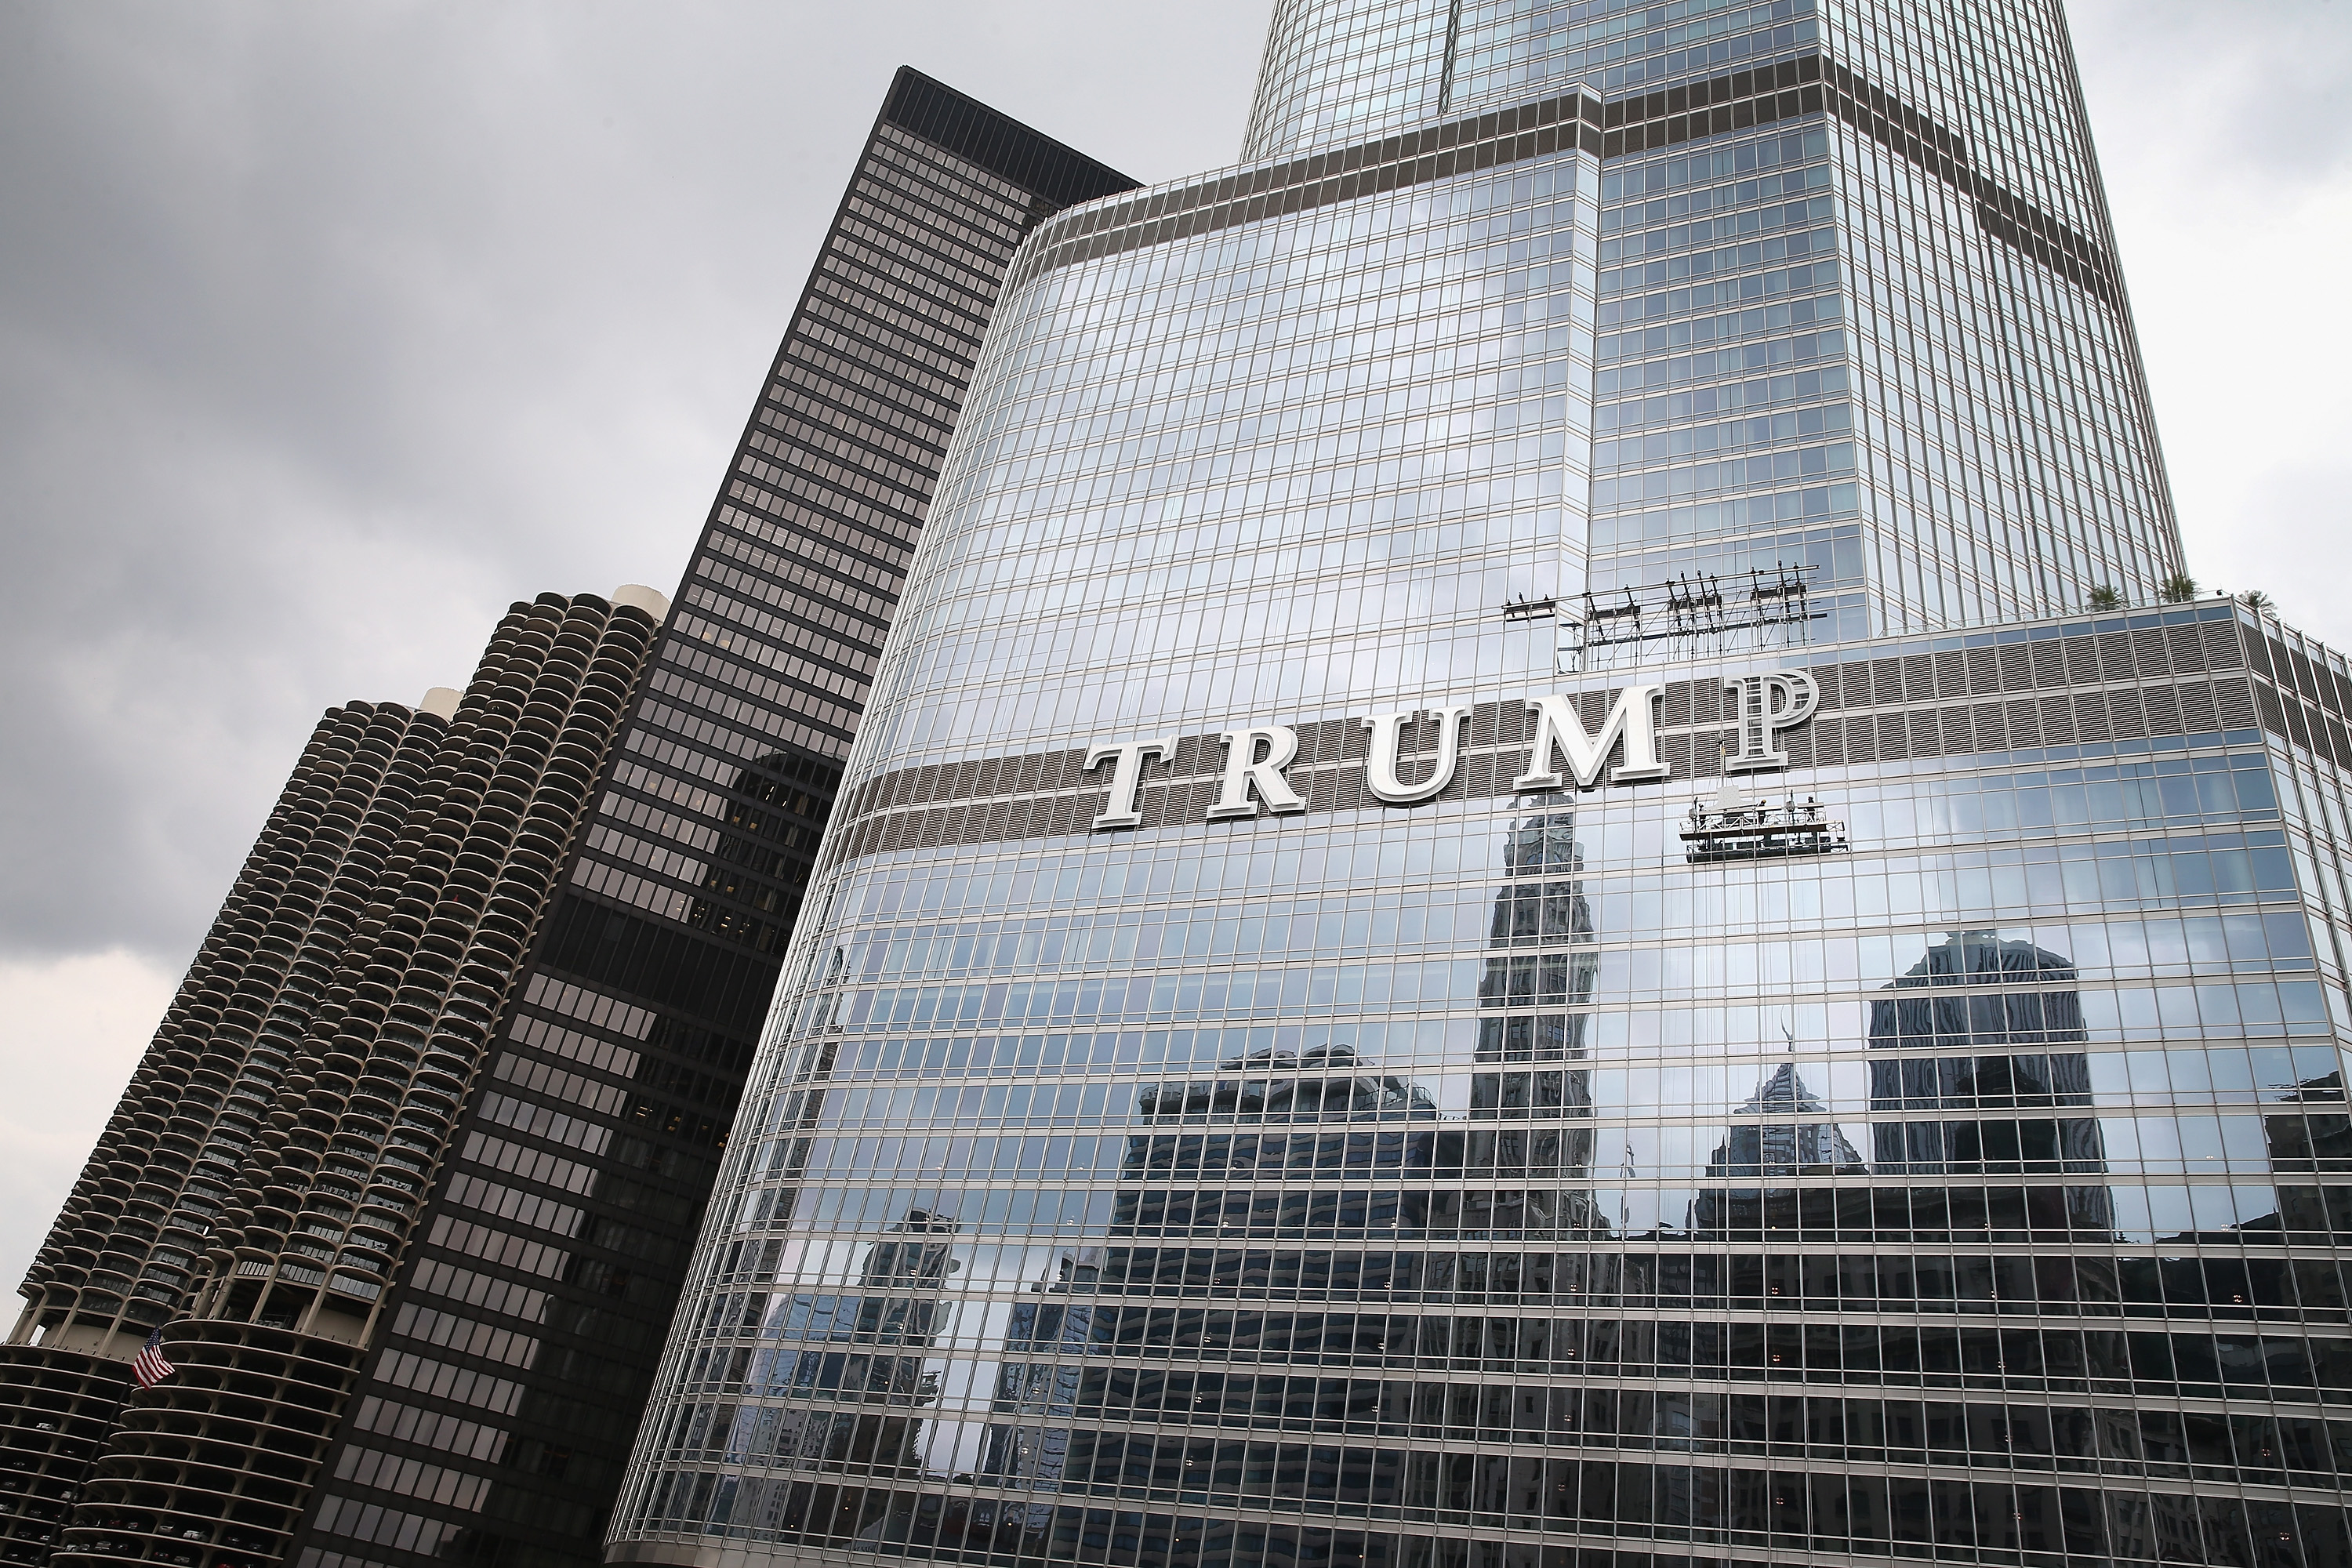 Large Trump Sign On Trump Building In Chicago Draws Ire Of Many In City